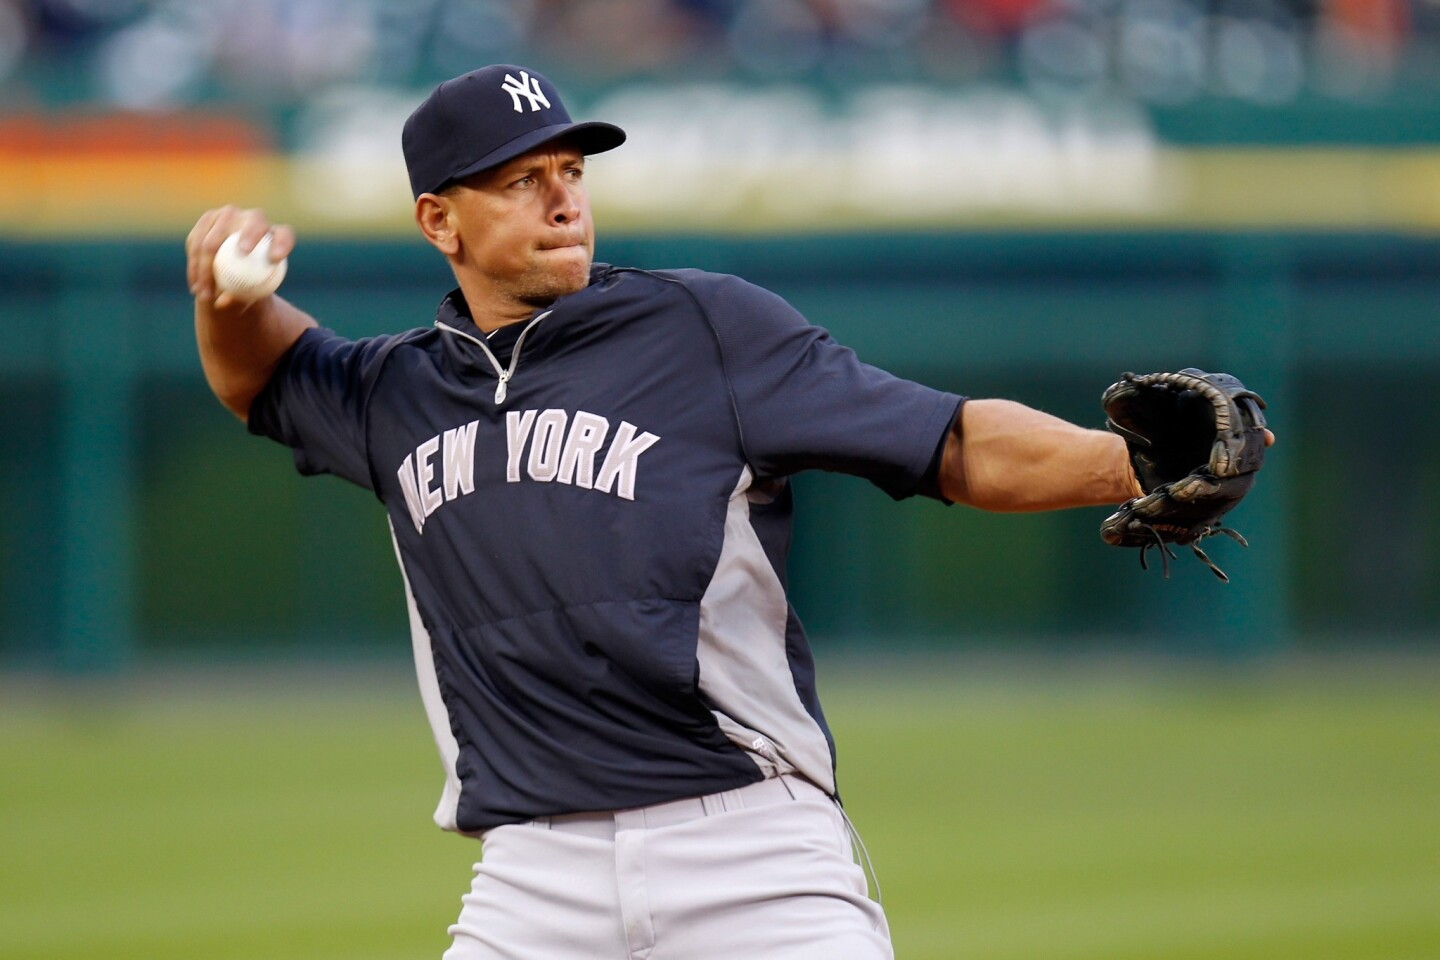 New York Yankees third baseman Alex Rodriguez, who has not played this season while recovering from hip surgery, was suspended until after the 2014 season by Major League Baseball over allegations of use of performance-enhancing drugs. Rodriguez will be allowed to play while his suspension is under appeal.